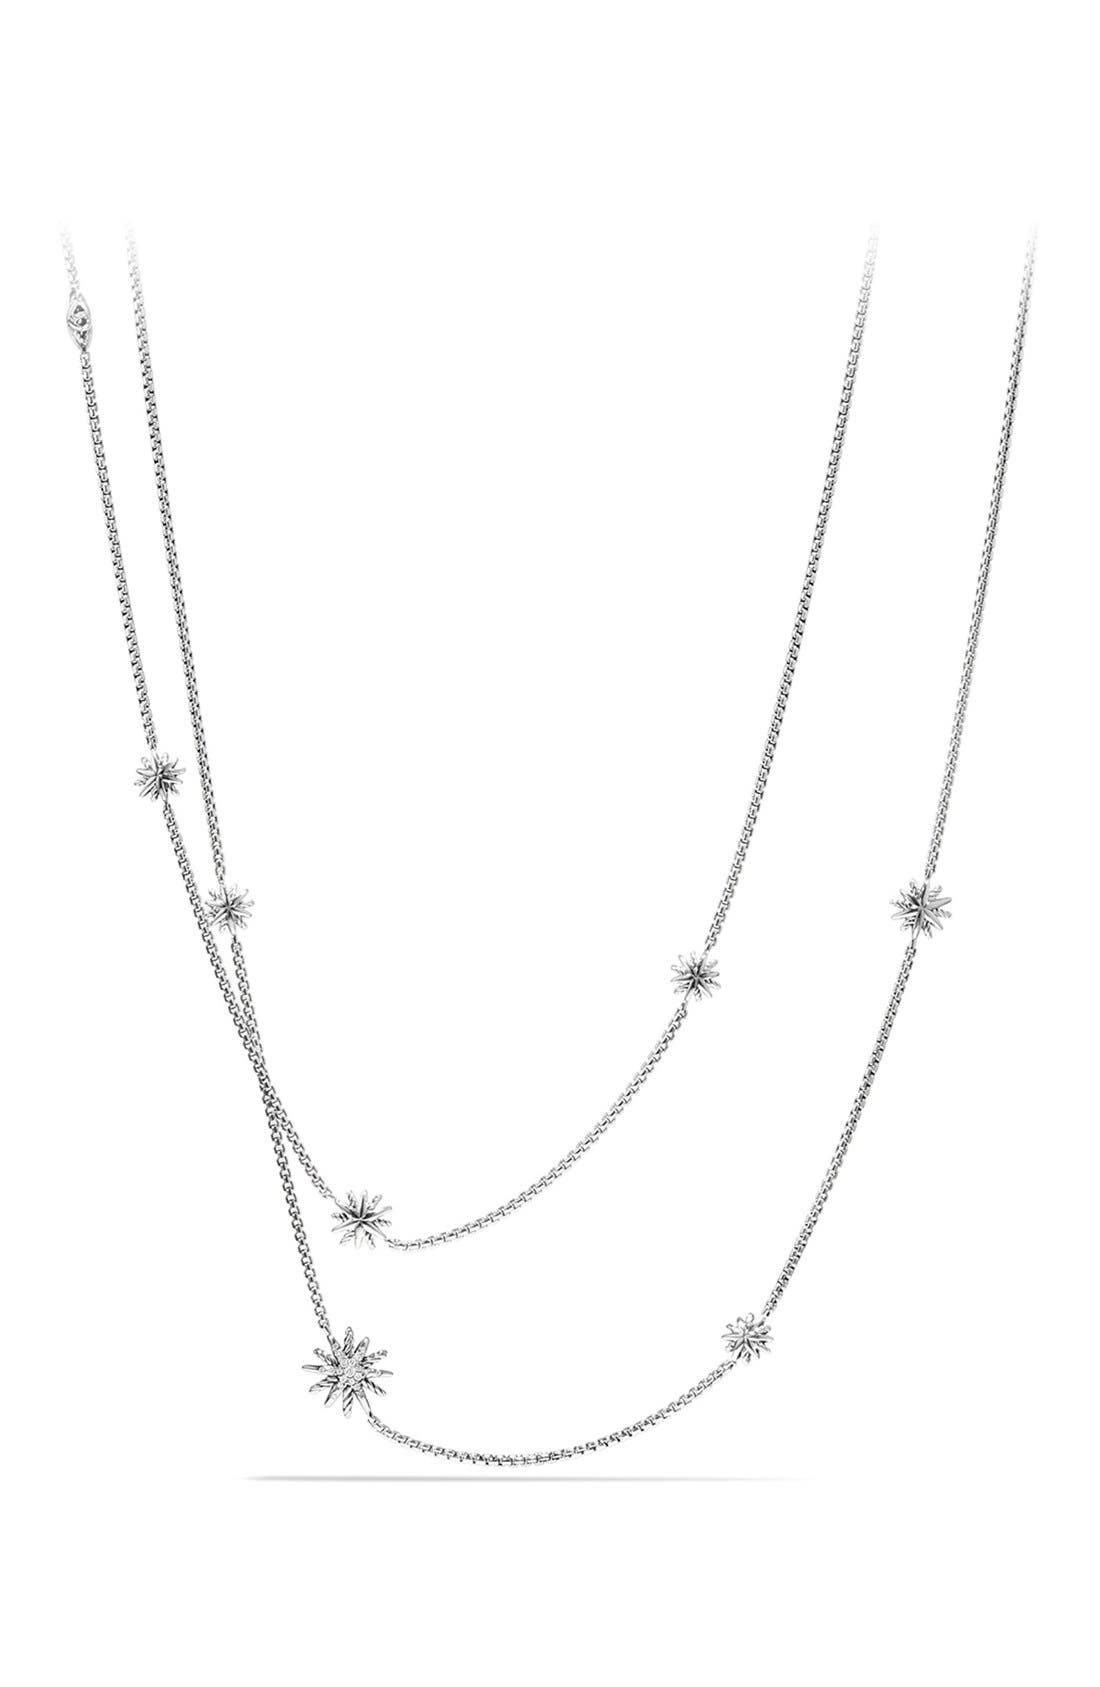 David Yurman 'Starburst' Station Necklace with Diamonds